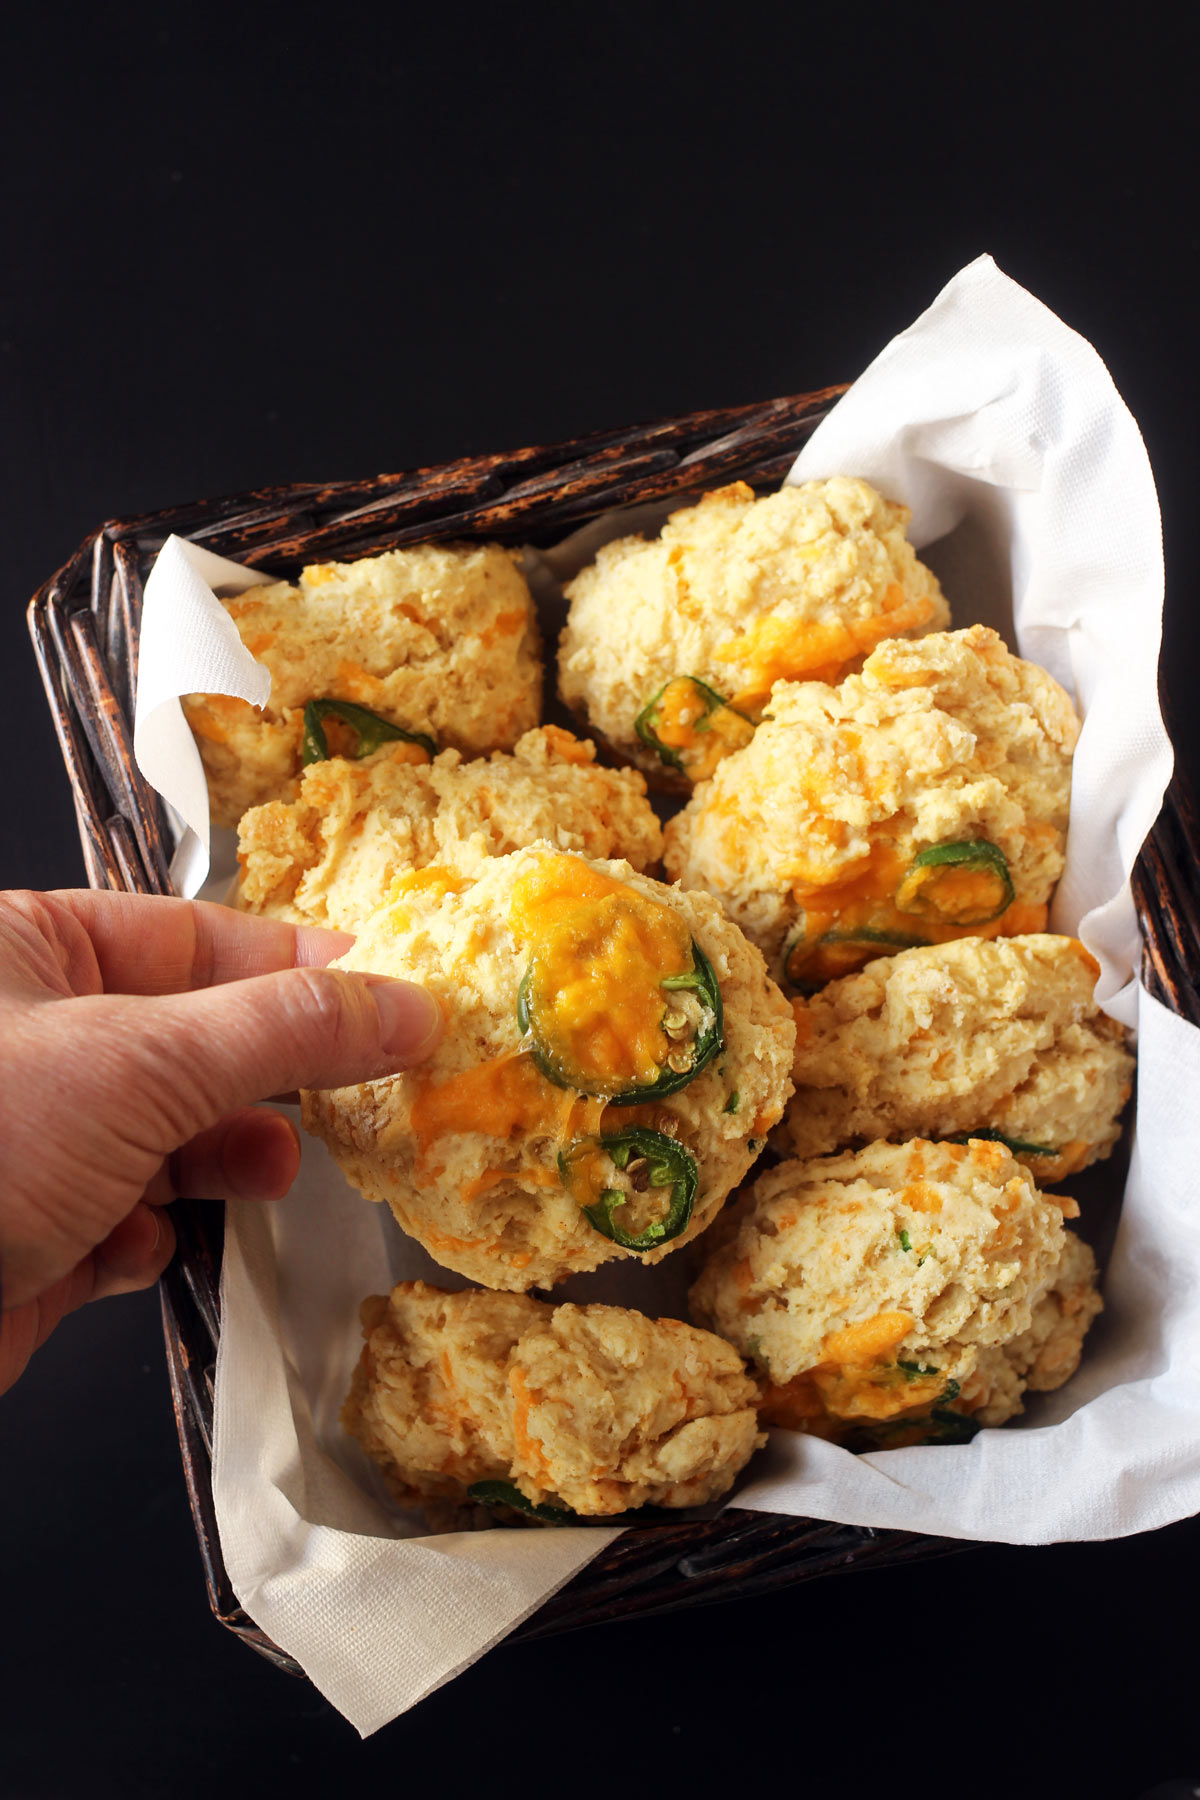 choosing jalapeño biscuit from the basket